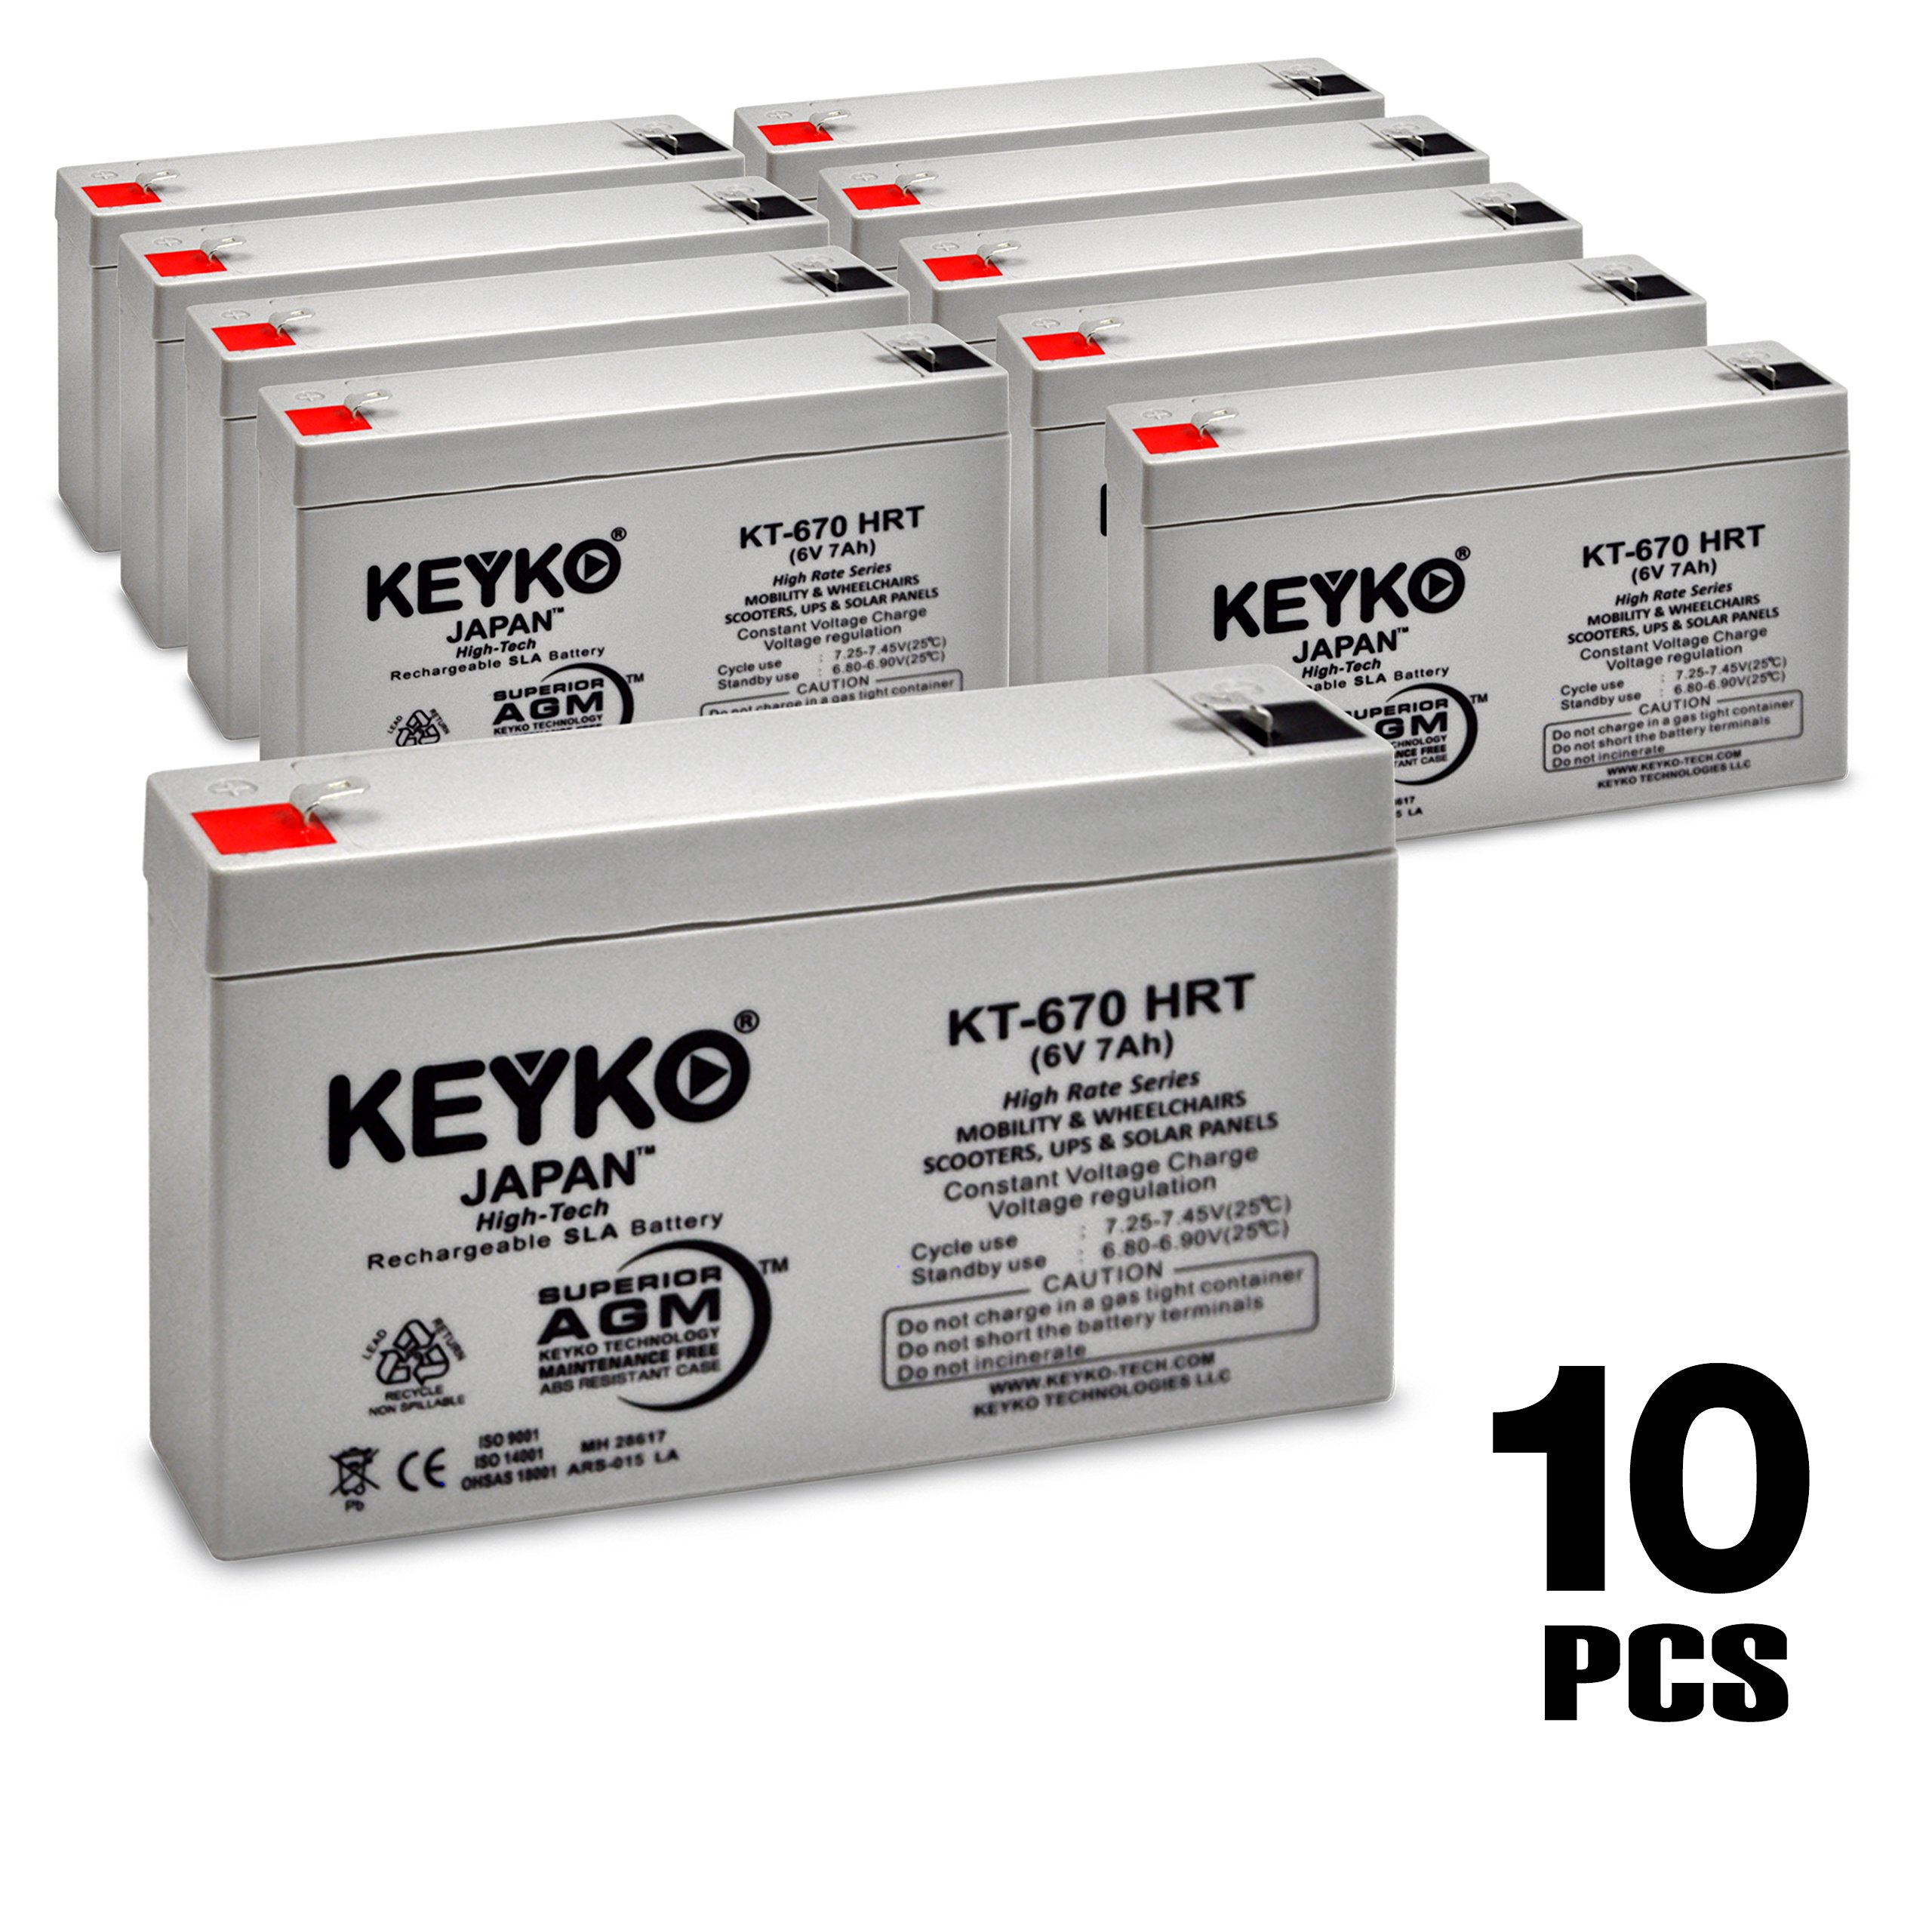 Genuine KEYKO 6V 7Ah / REAL 7.8 Amp Deep Cycle High Rate Series SLA / AGM Battery Medical Solar & Mobility - 10 Pack